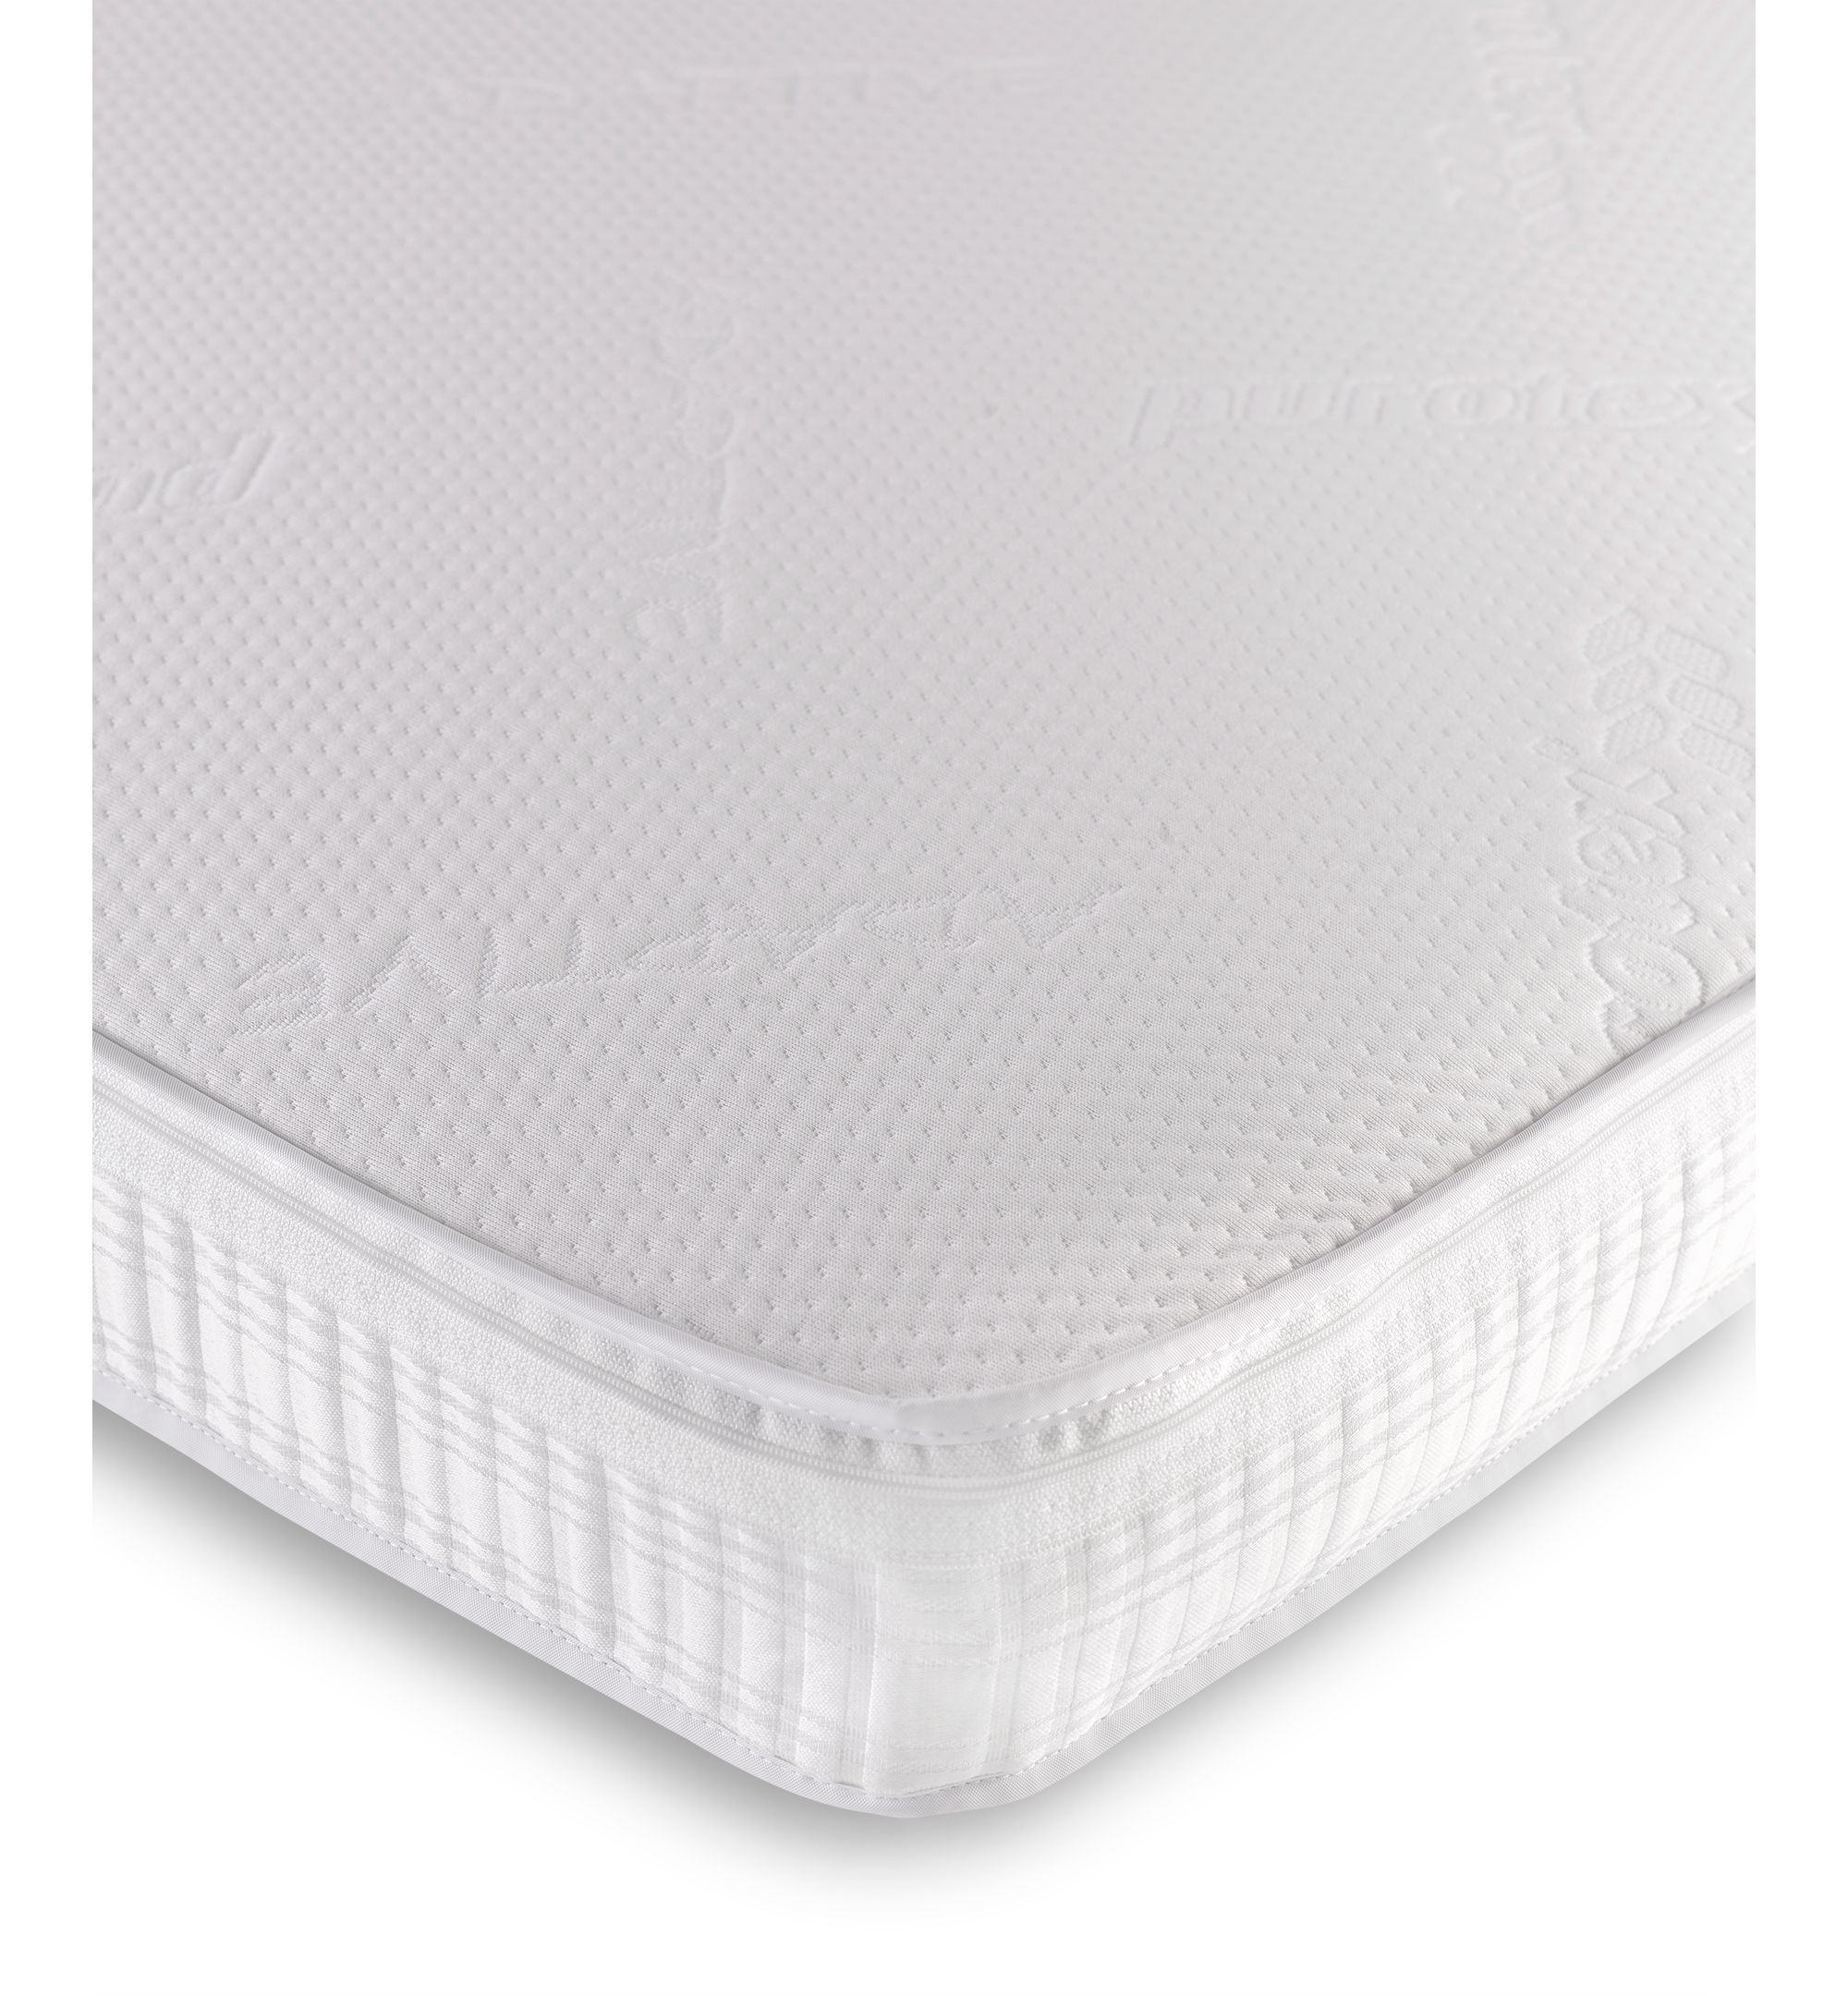 38 X 89cm Crib Mattress Bought Mothercare Adaptive Purotex Pocket Spring Cot Bed